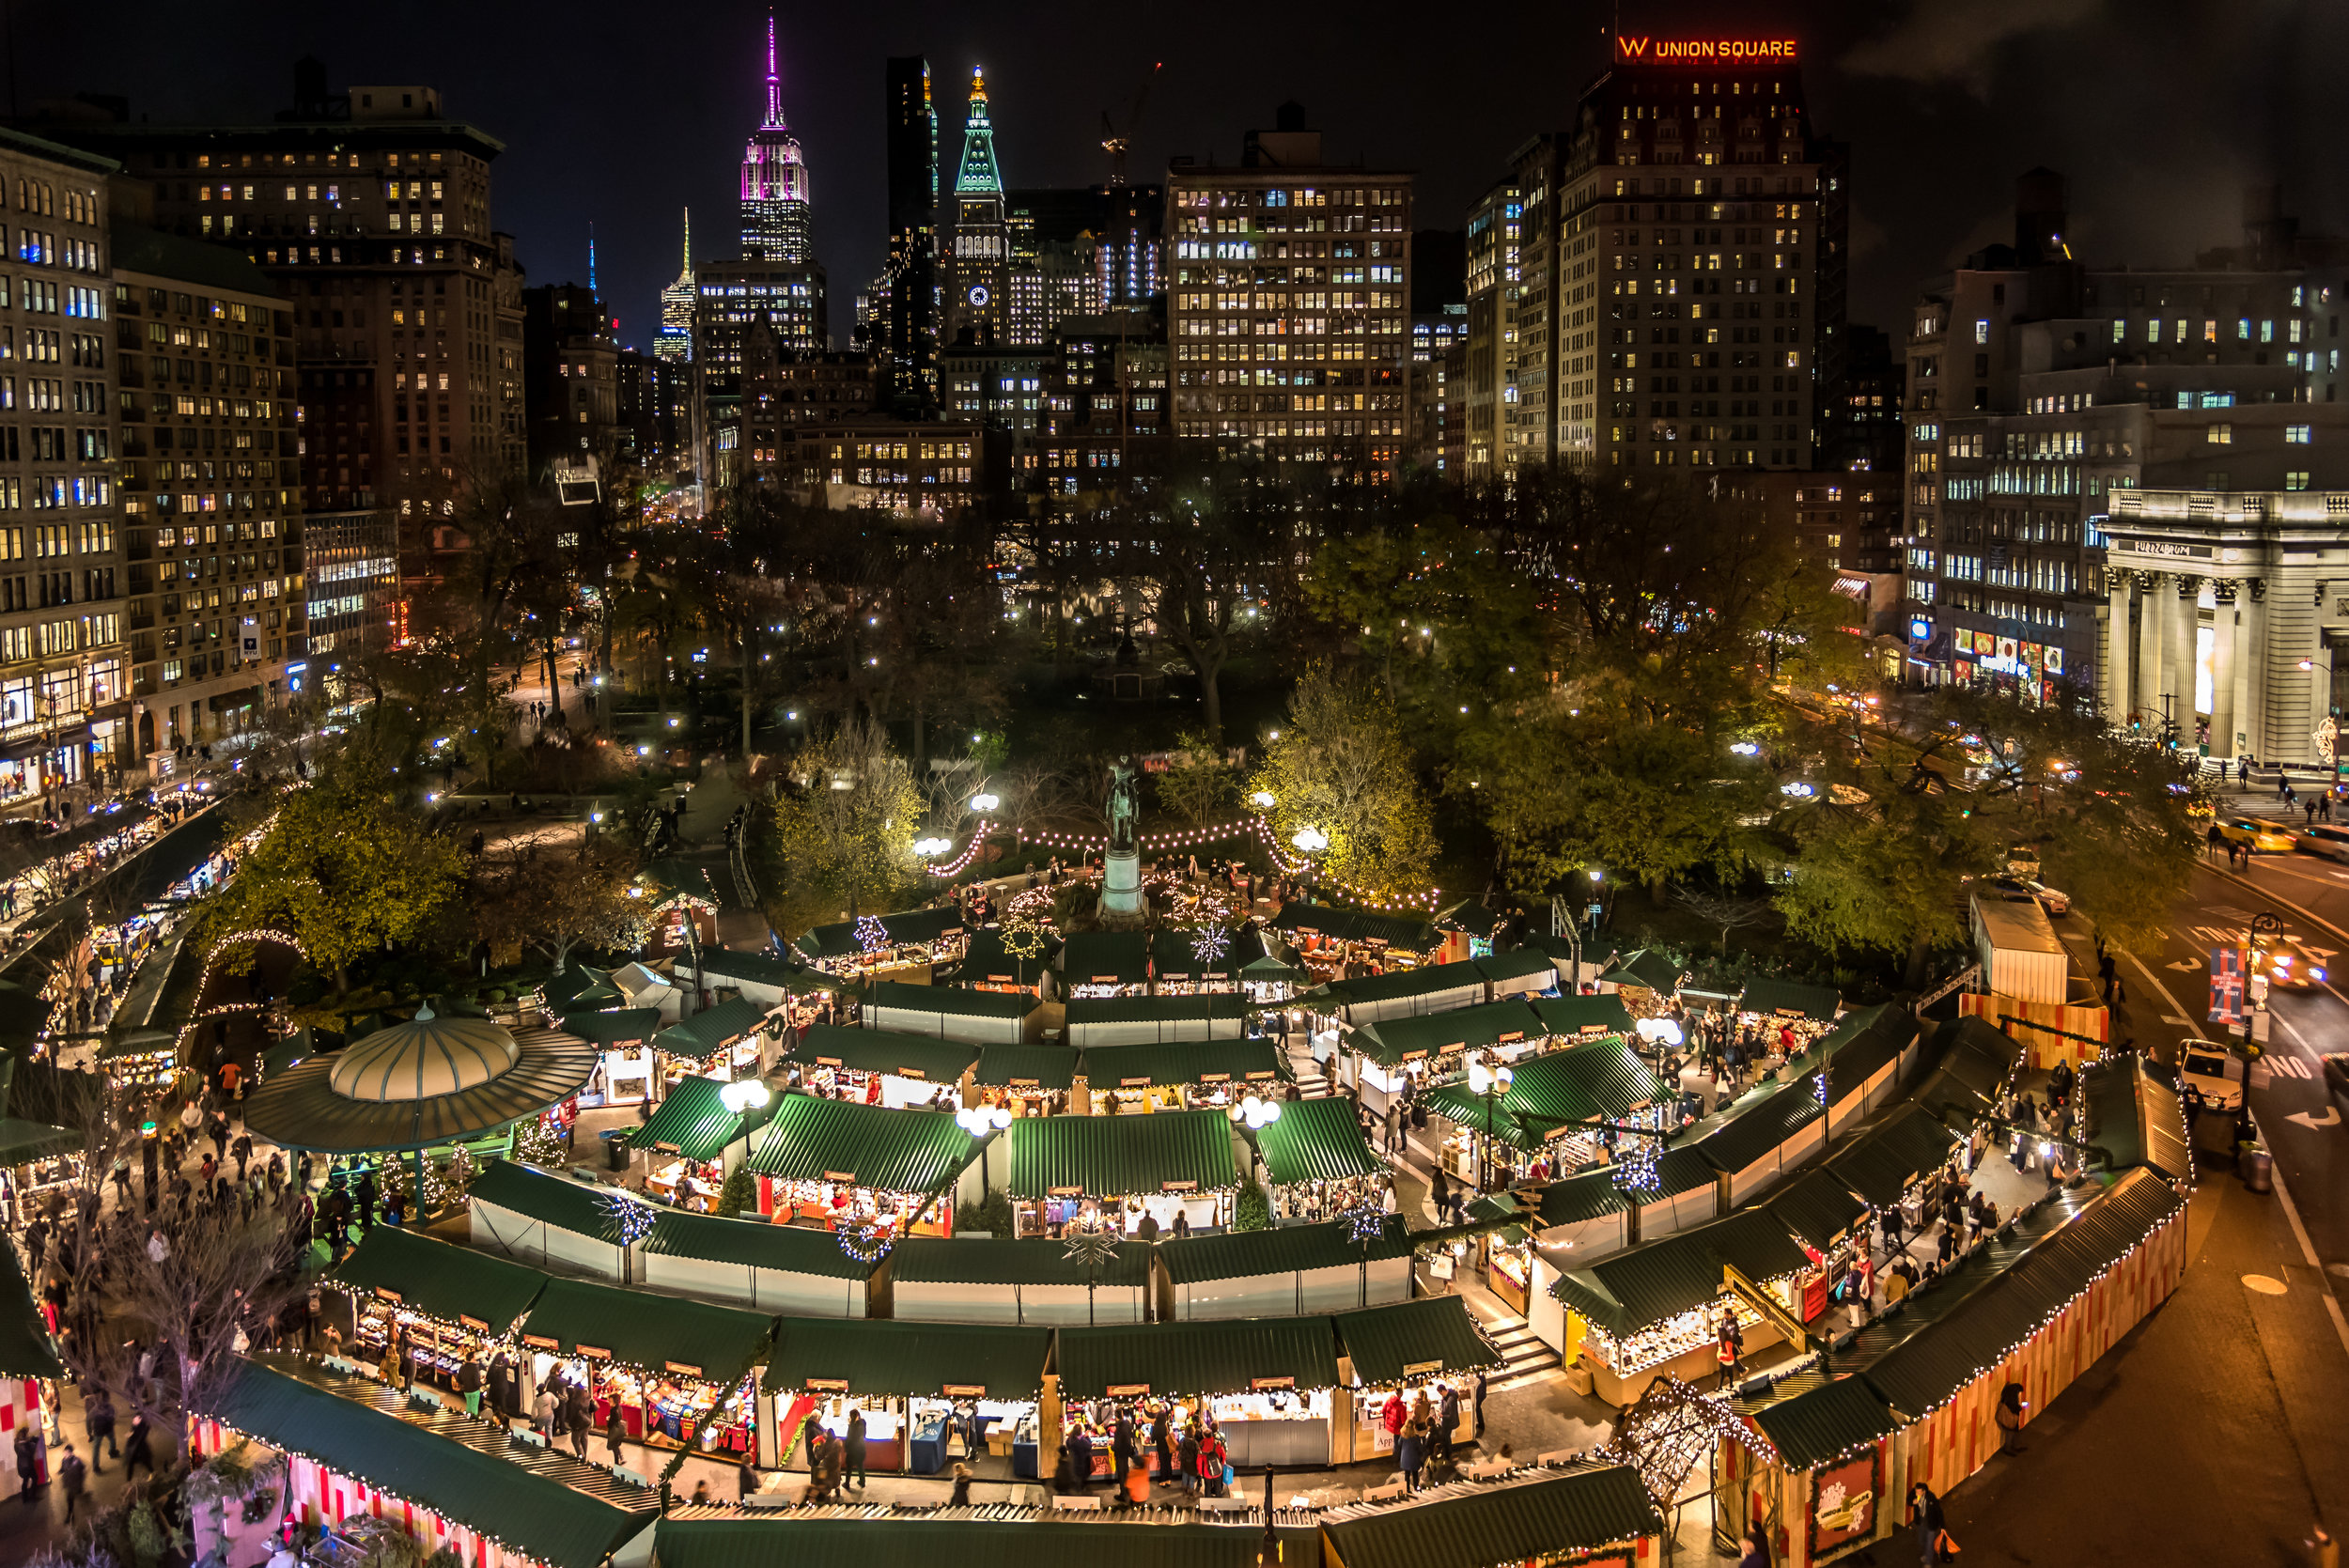 holiday-market-1-credit-javan-ng-javanng-com